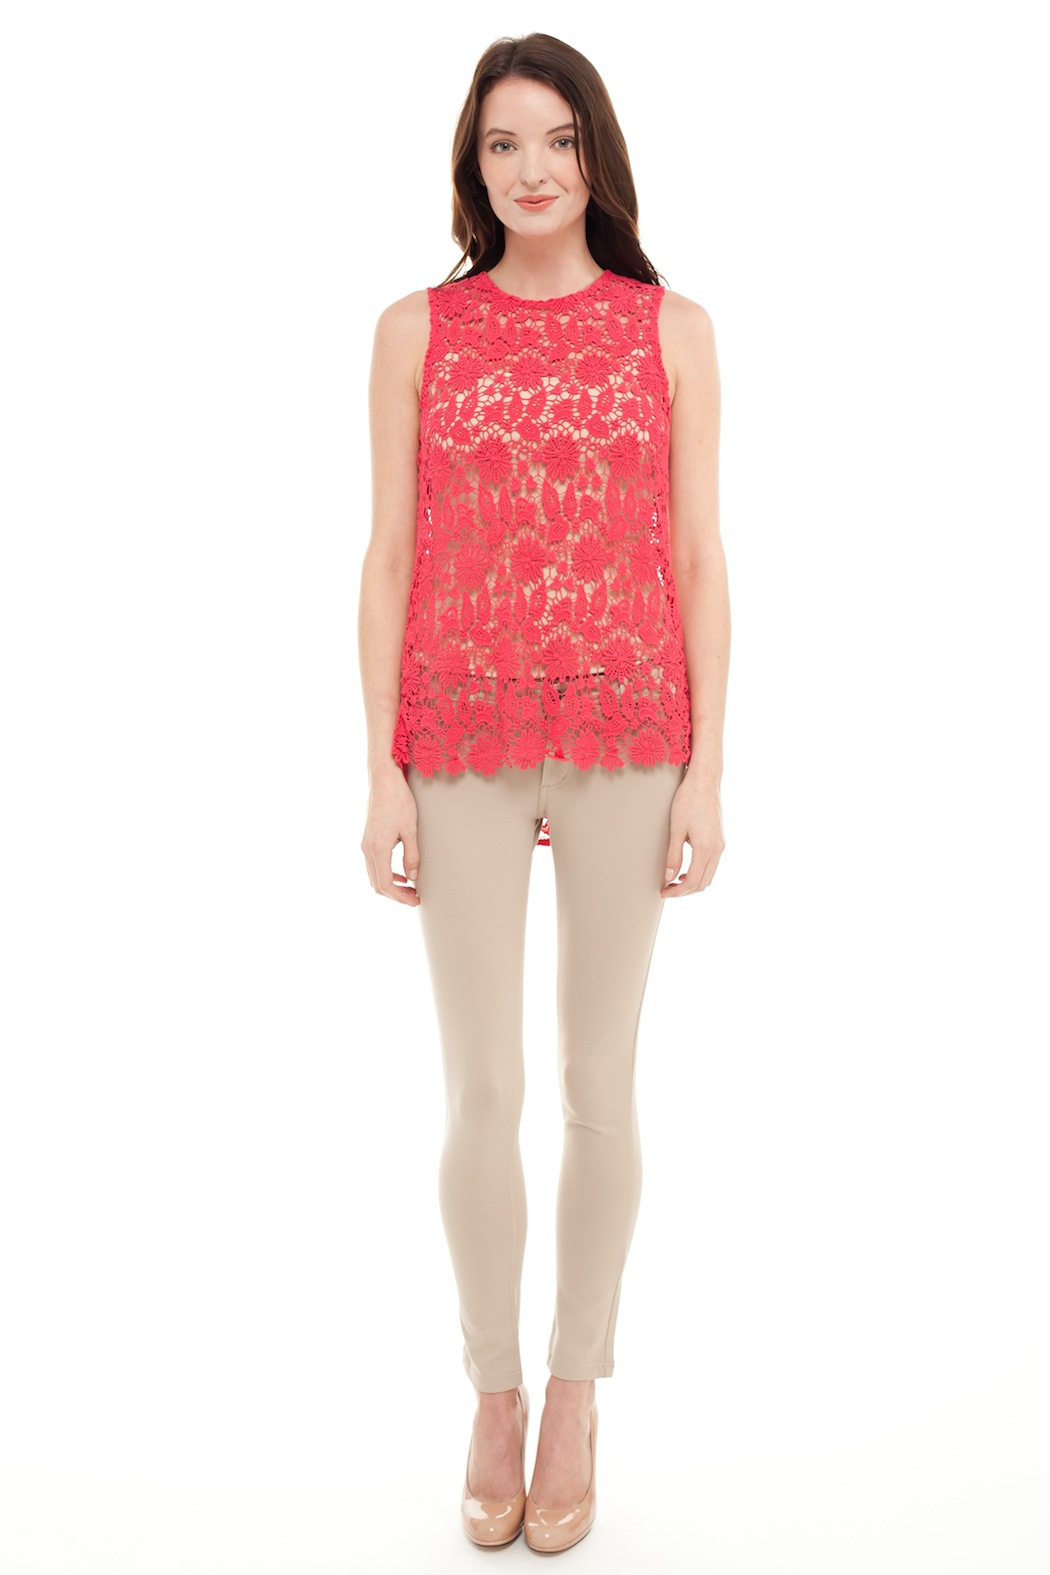 Alison Stiles Lace Crochet Knit Top - Front Full Image